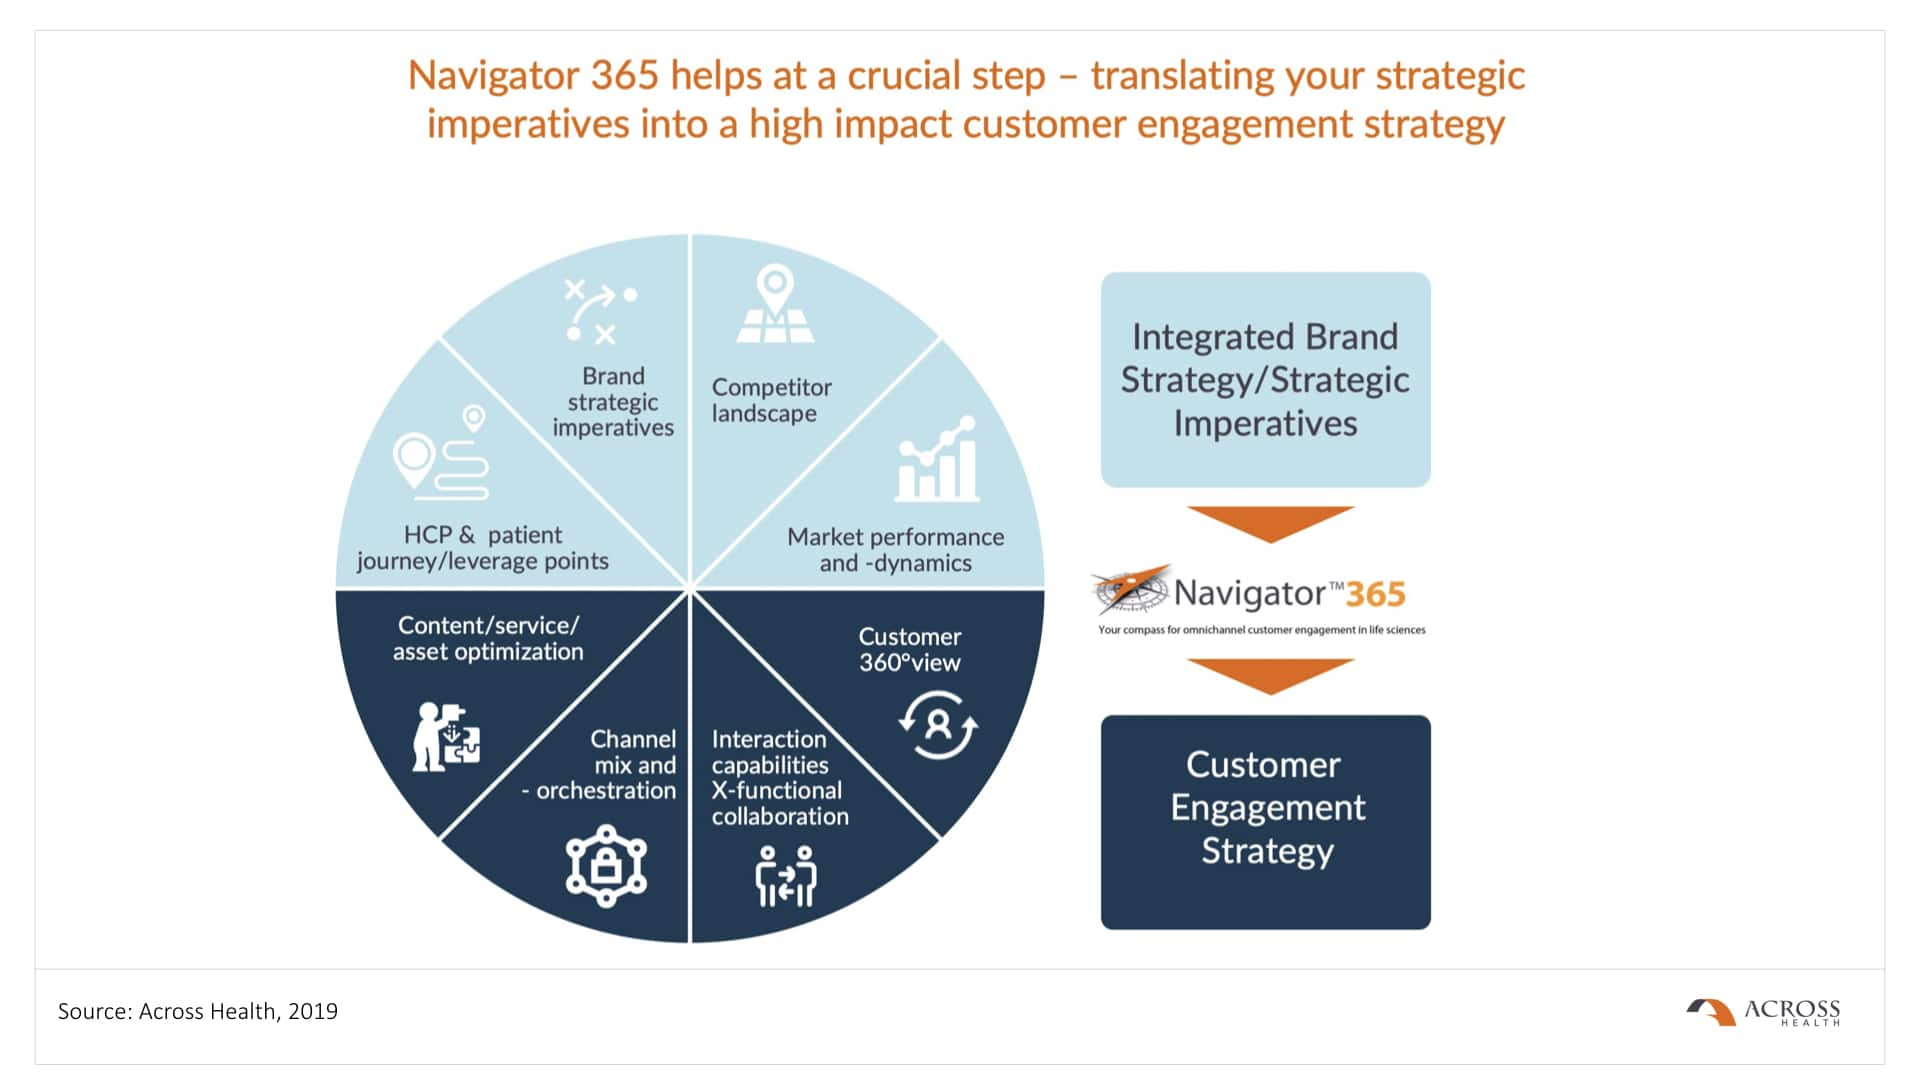 Navigator 365 helps to translate strategic imperatives into a customer engagement strategy